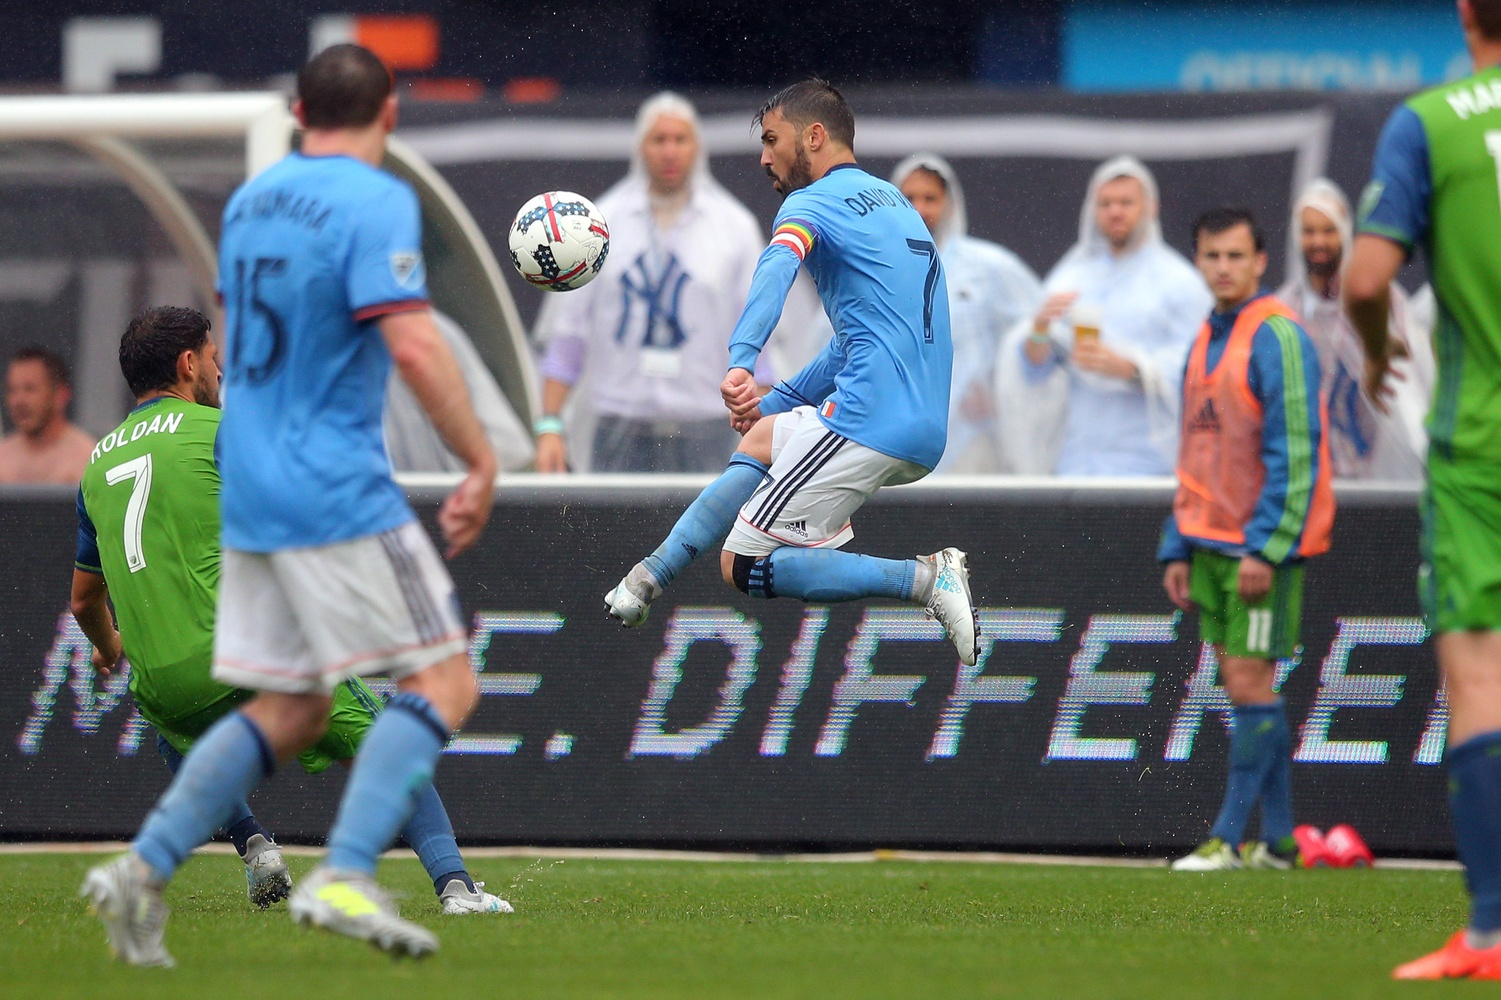 New York City FC forward David Villa (7) plays the ball against Seattle Sounders FC midfielder Cristian Roldan (7) during the second half at Yankee Stadium. Credit: Brad Penner-USA TODAY Sports